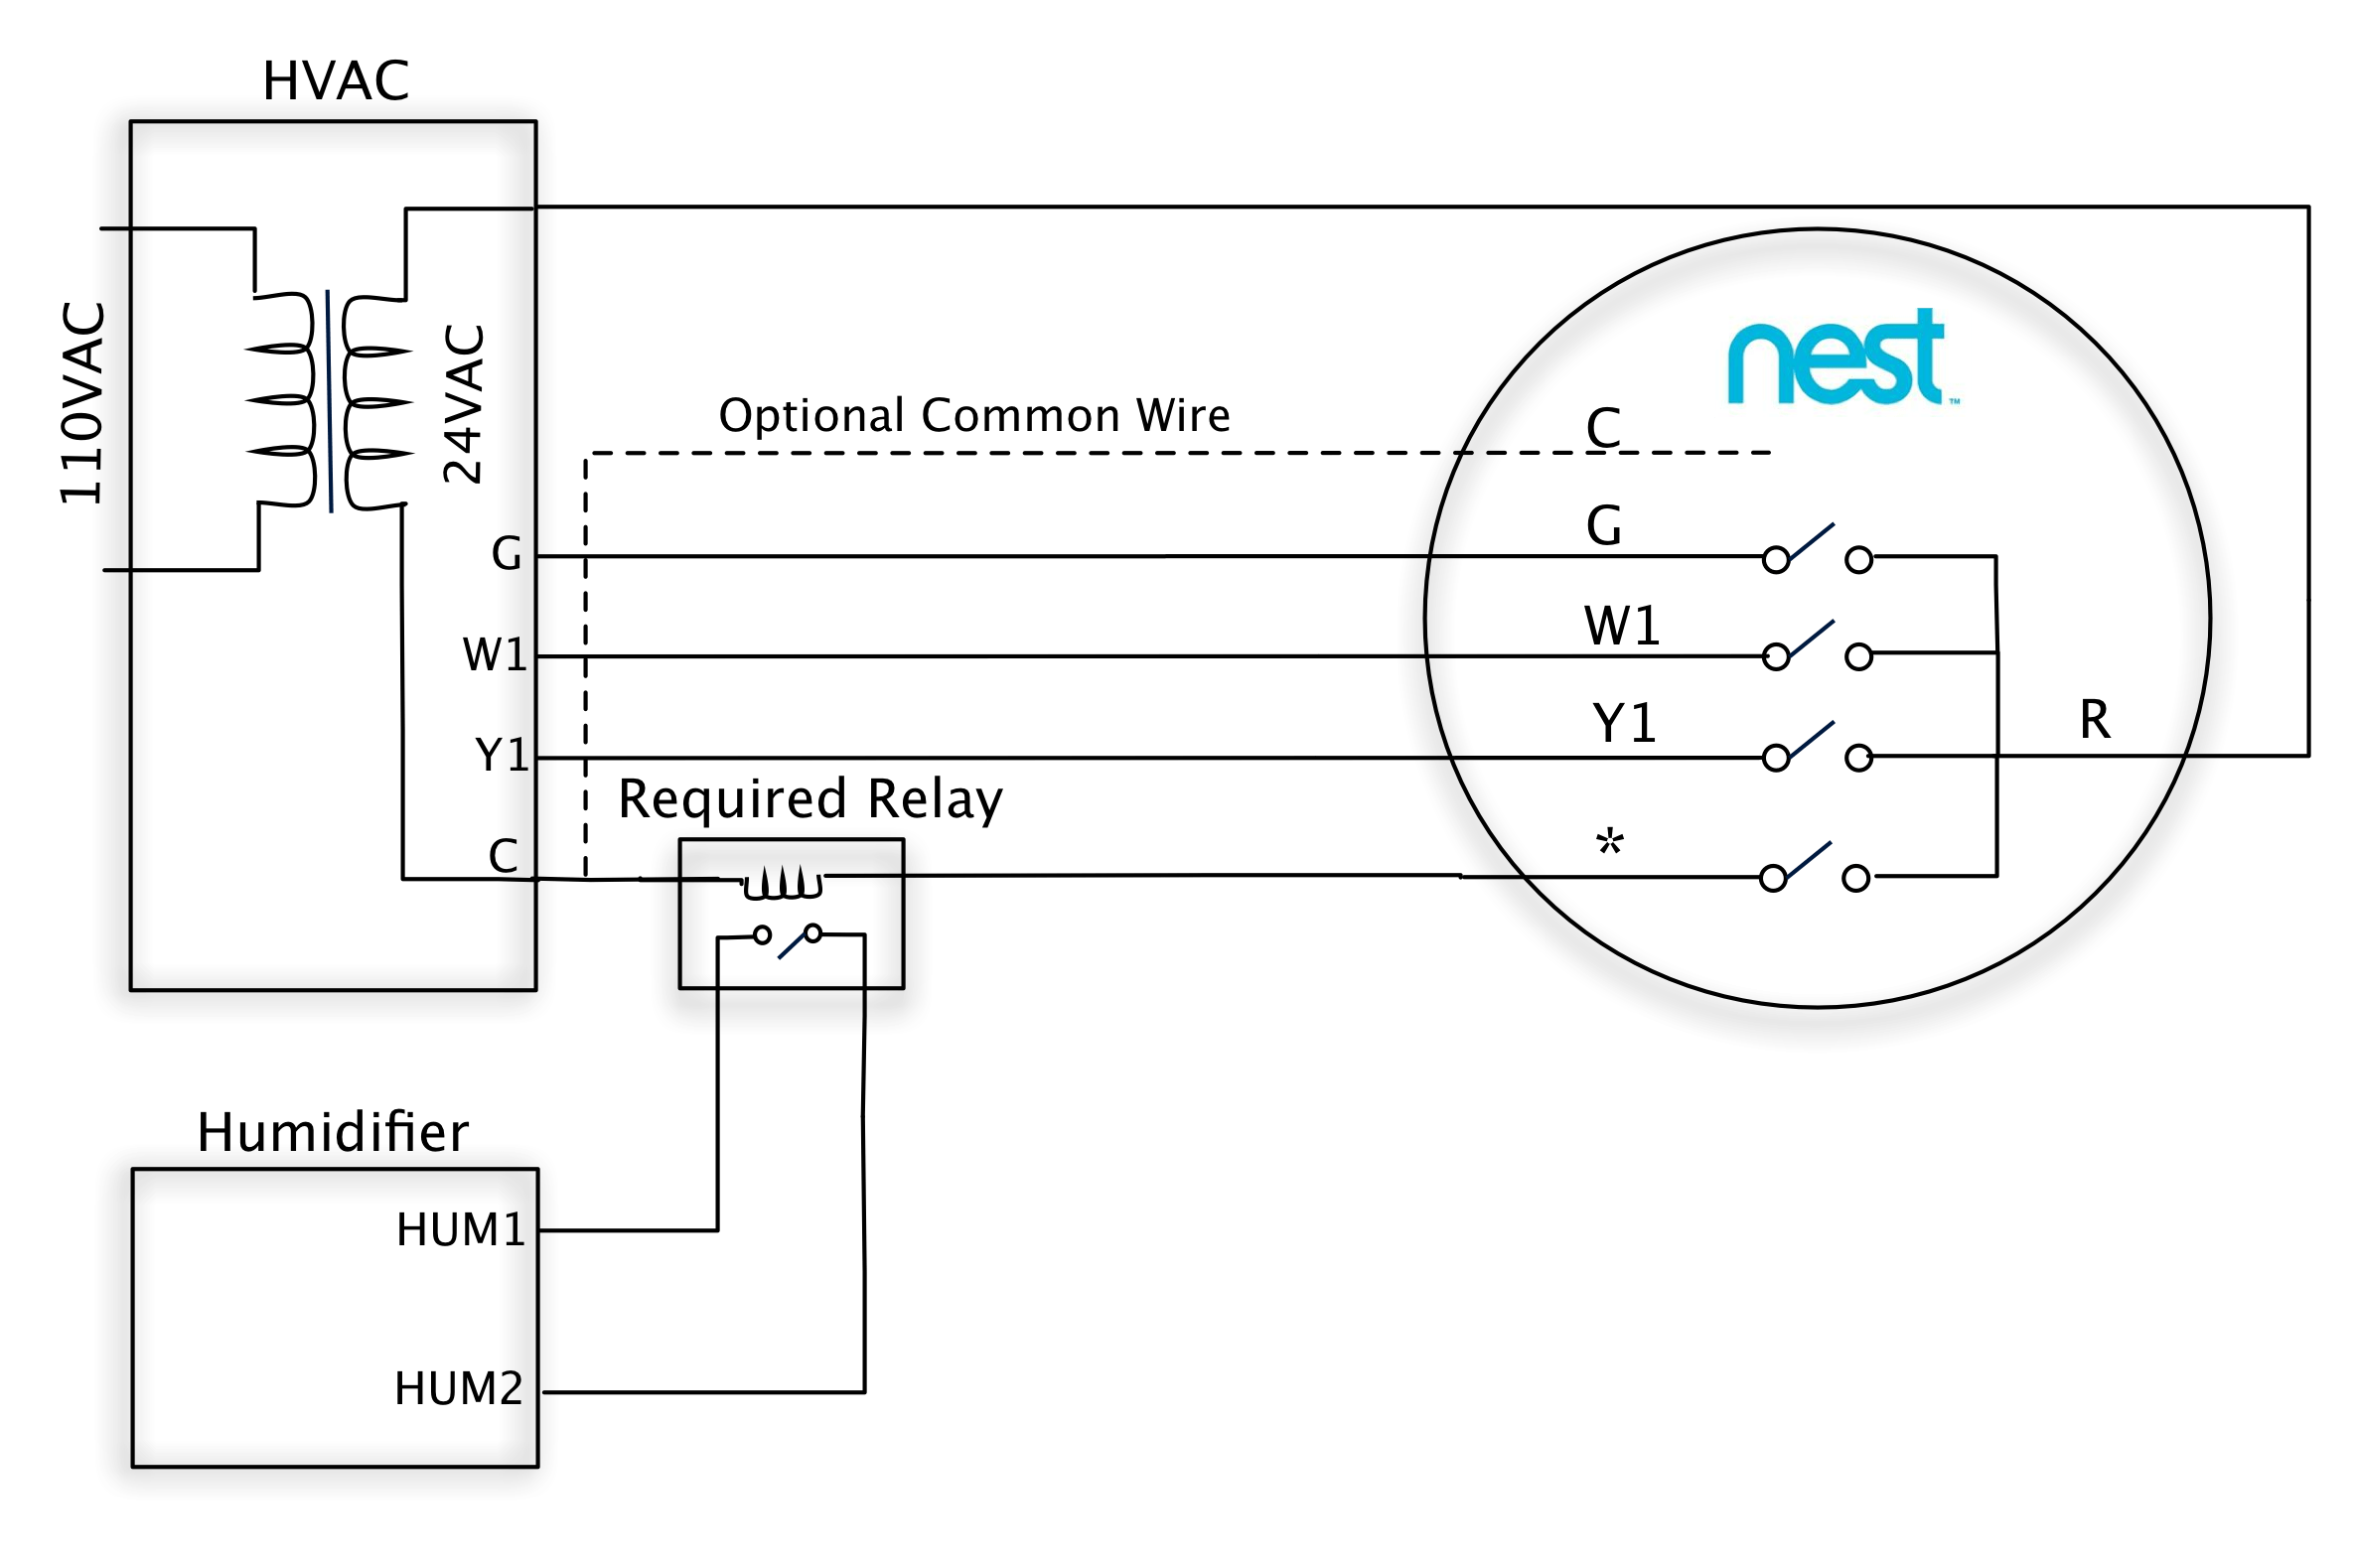 wiring diagram for nest thermostat e 2016 dodge ram 1500 a get free